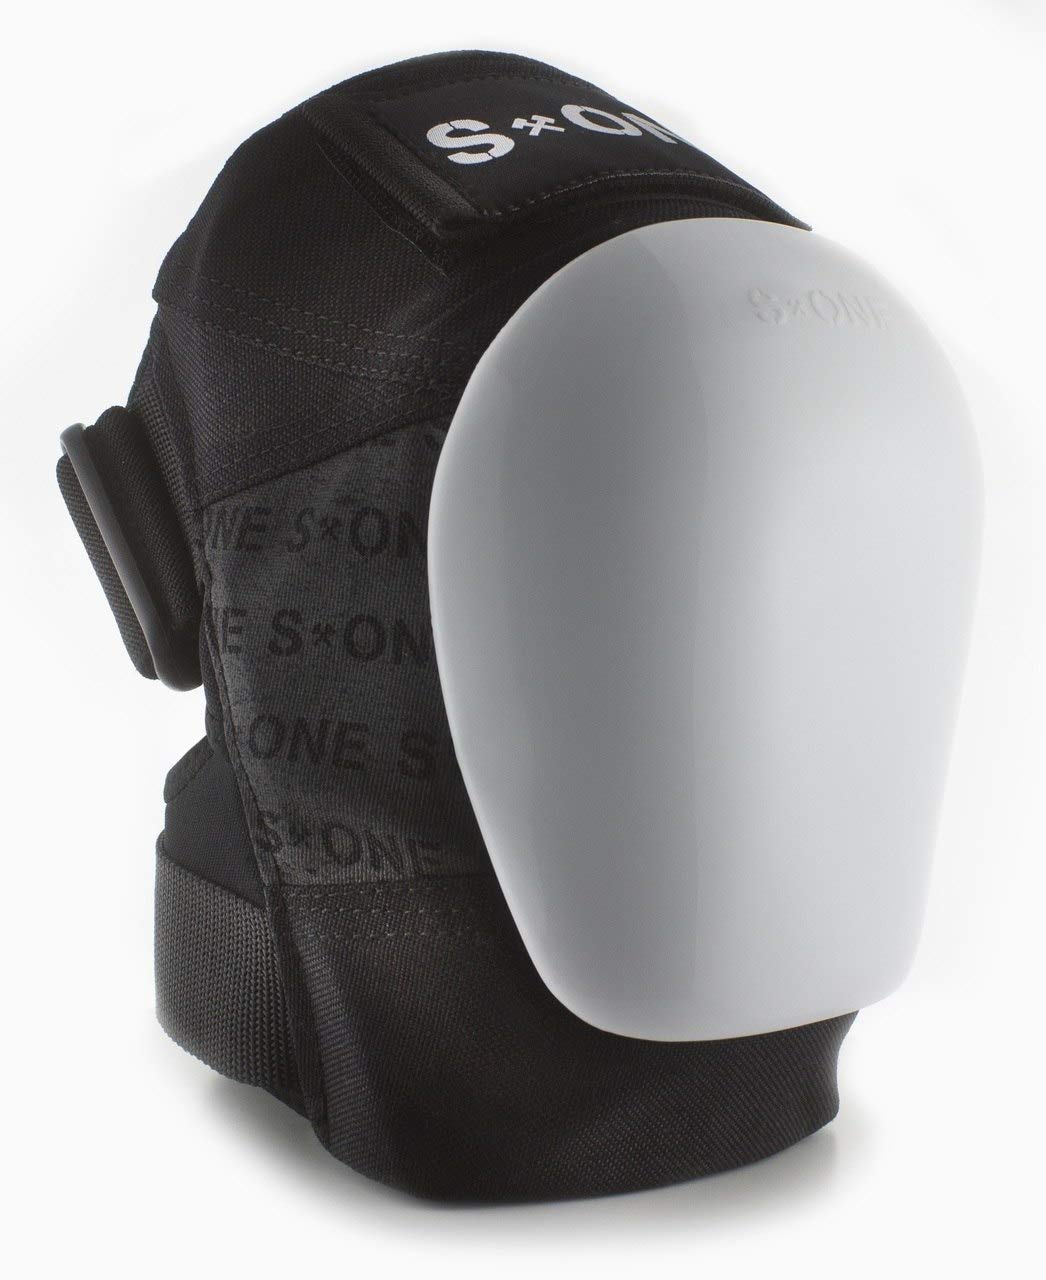 S-ONE GEN 3 PRO Knee Pads - White Cap (Small : Top of Knee 14''-15''; Bottom Knee 12''-13'')